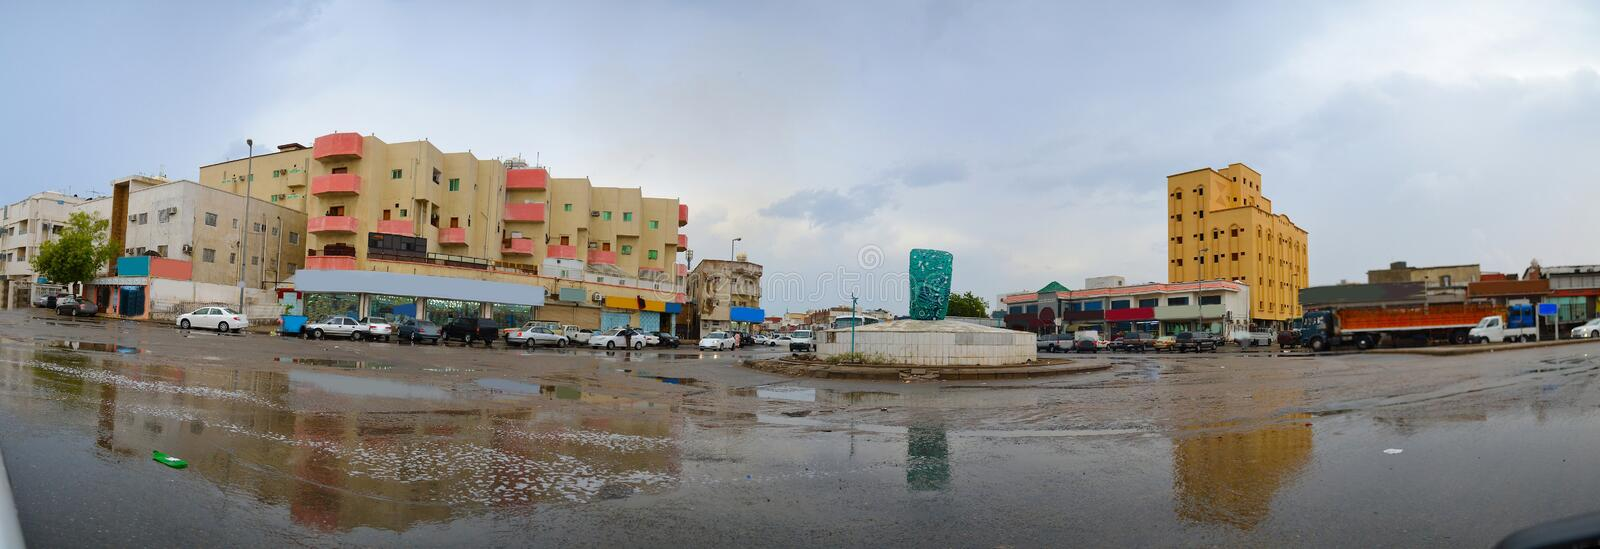 Download South Jeddah City After Heavy Rain With Cloudy Gray Stock Image - Image: 27913911